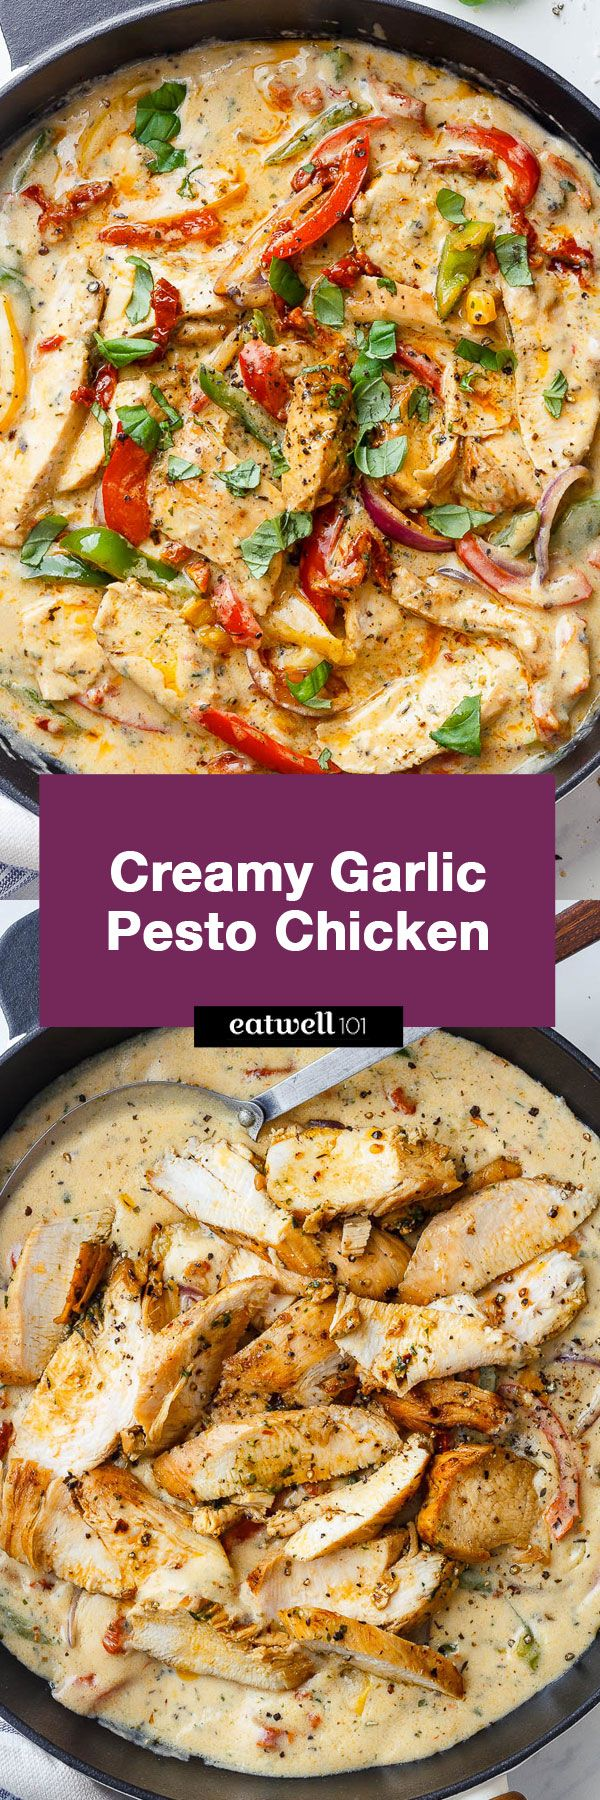 Creamy Garlic Pesto Chicken - This stir-fry chicken with pesto, sun-dried tomatoes and bell peppers in a creamy garlic sauce is simply amazing.